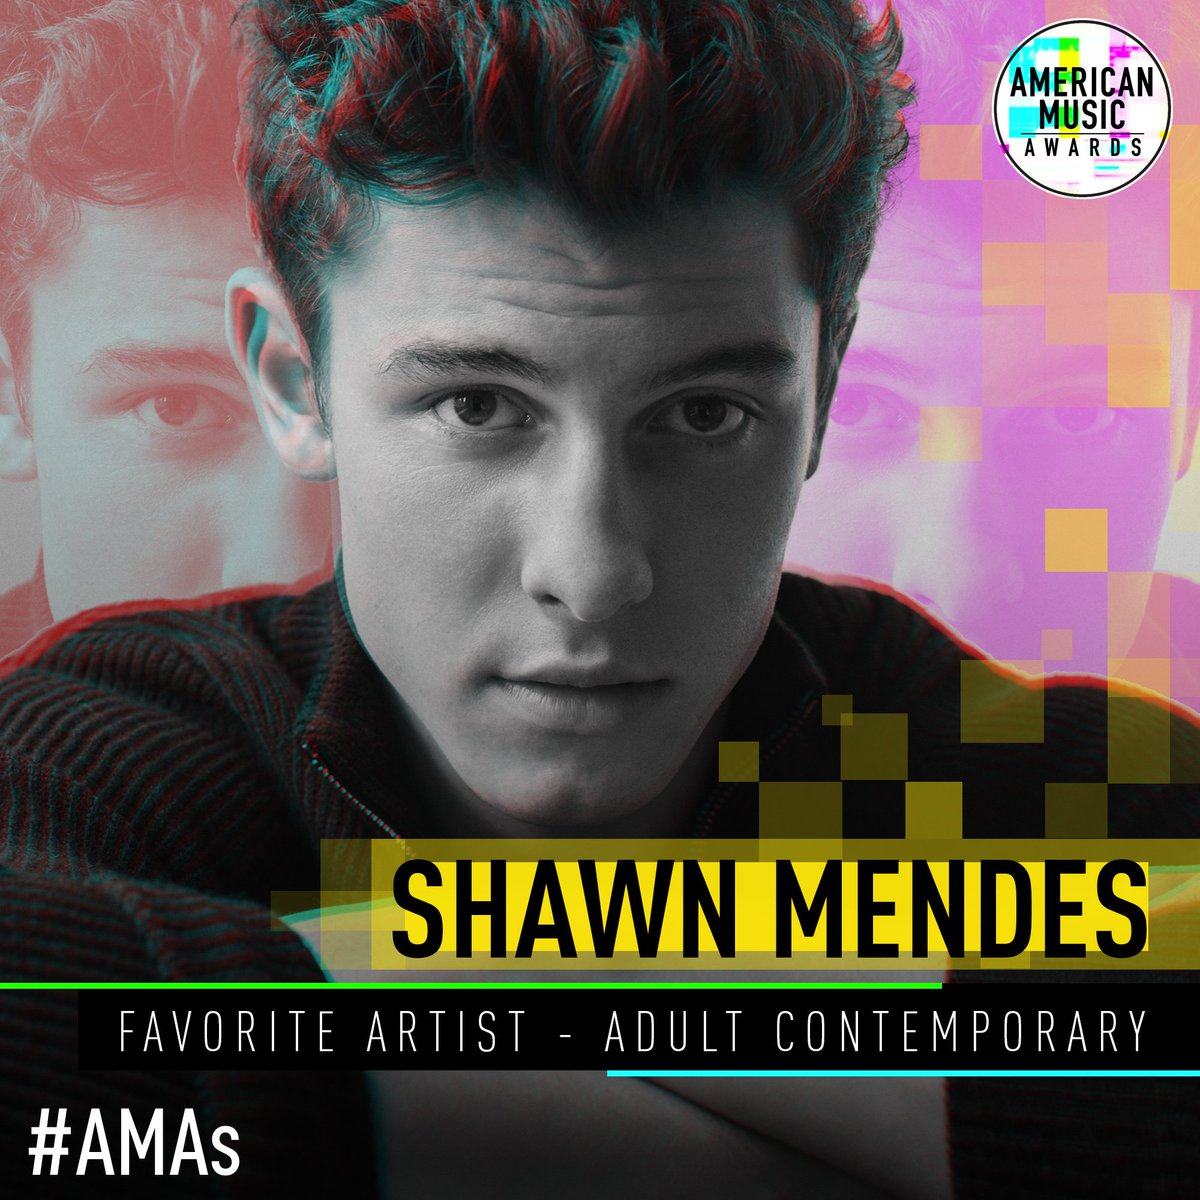 RT @AMAs: The winner of Favorite Artist - Adult Contemporary is... @ShawnMendes ! #AMAs https://t.co/f3stYKiLv9